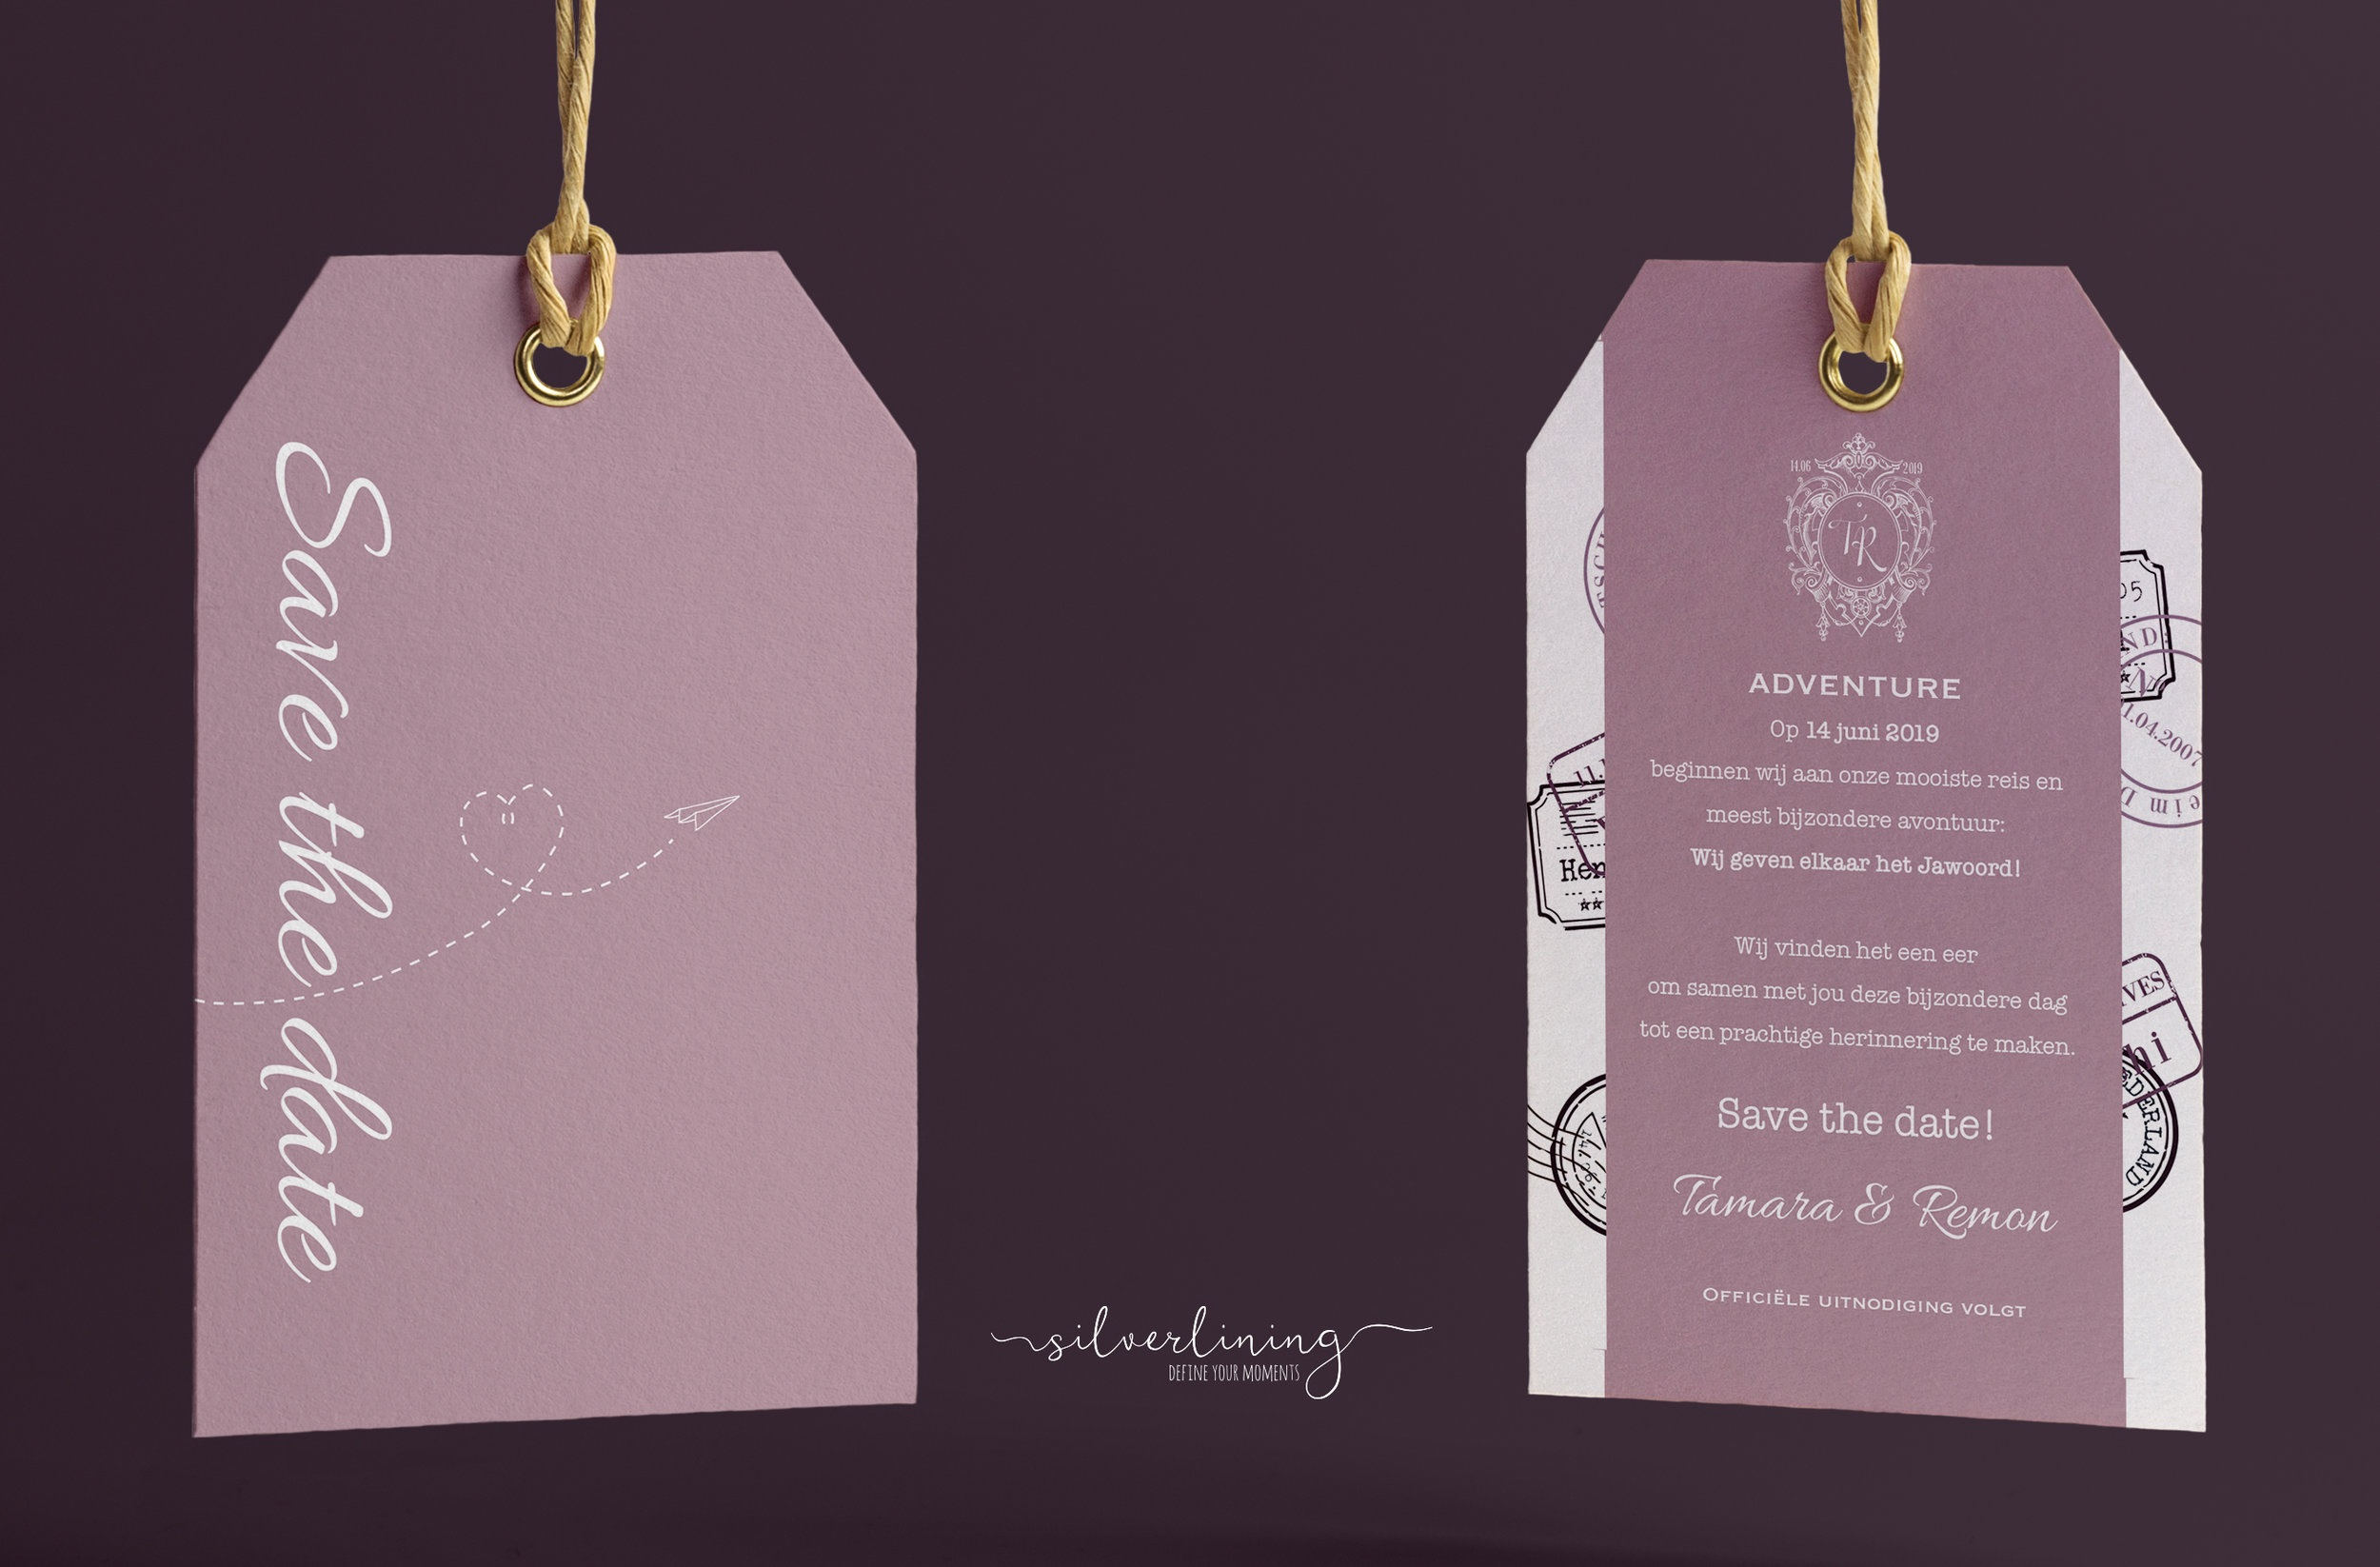 SAVE THE DATE LABEL2.jpg